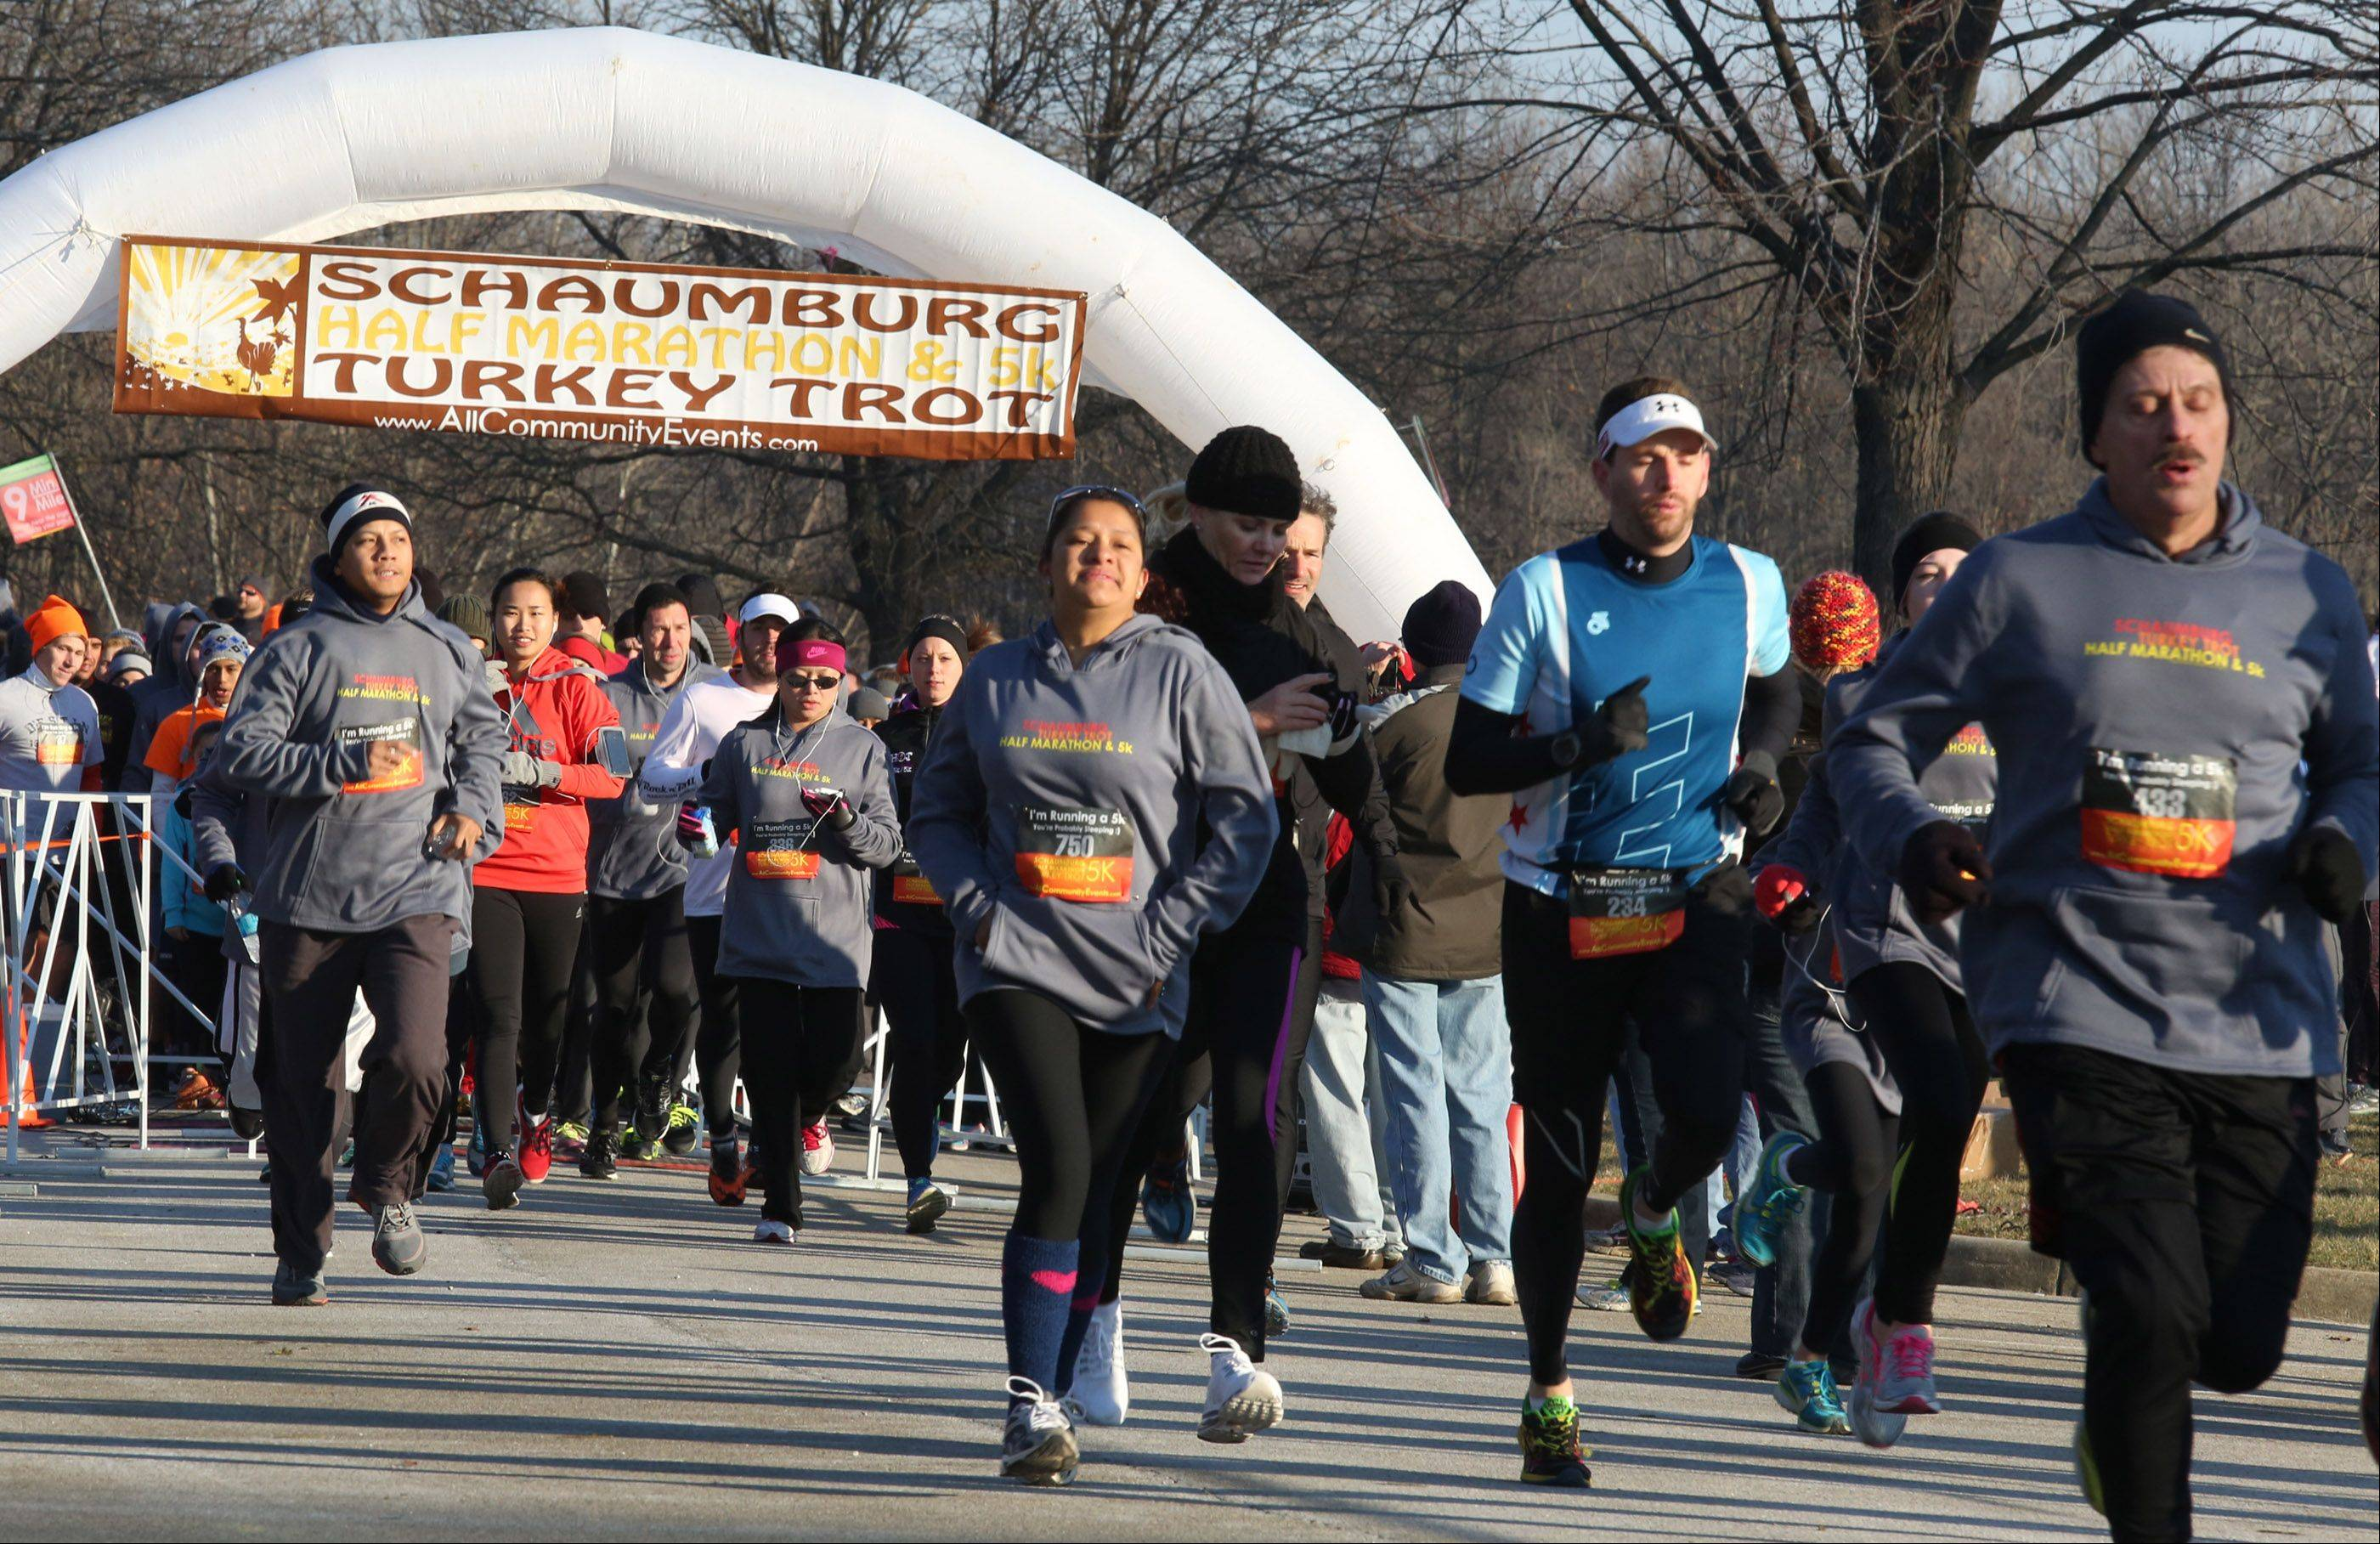 About 300 runners were at the starting line for the Schaumburg 5K Turkey Trot on Saturday in the Busse Woods Forest Preserve near Schaumburg. The half marathon started about 45 minutes later.